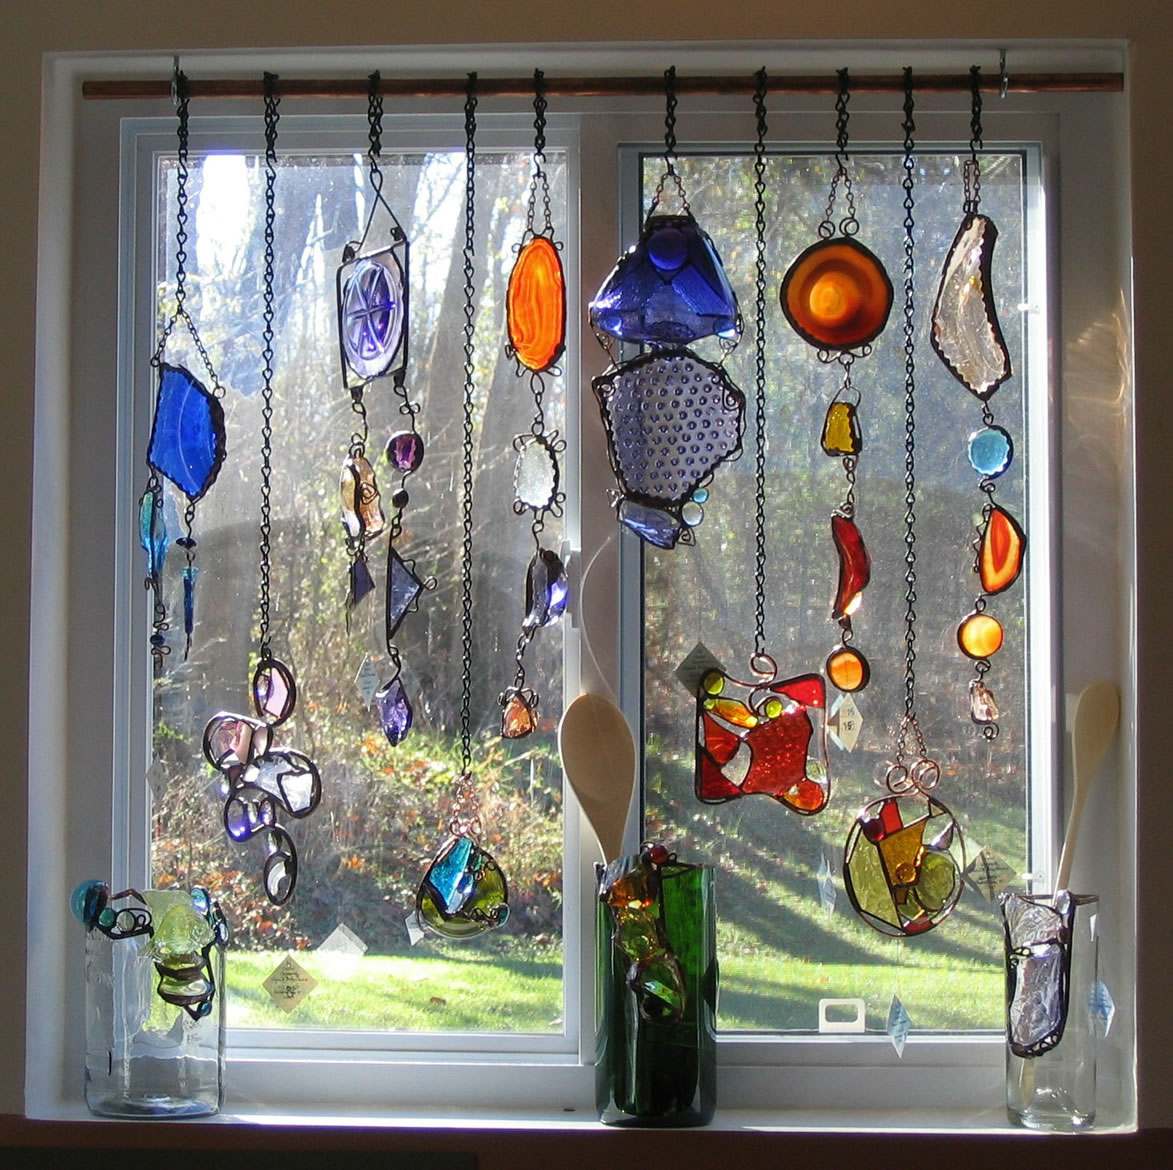 Stained glass window hangings also add stained glass panel above door also add leadlight window panels also add stained glass window company